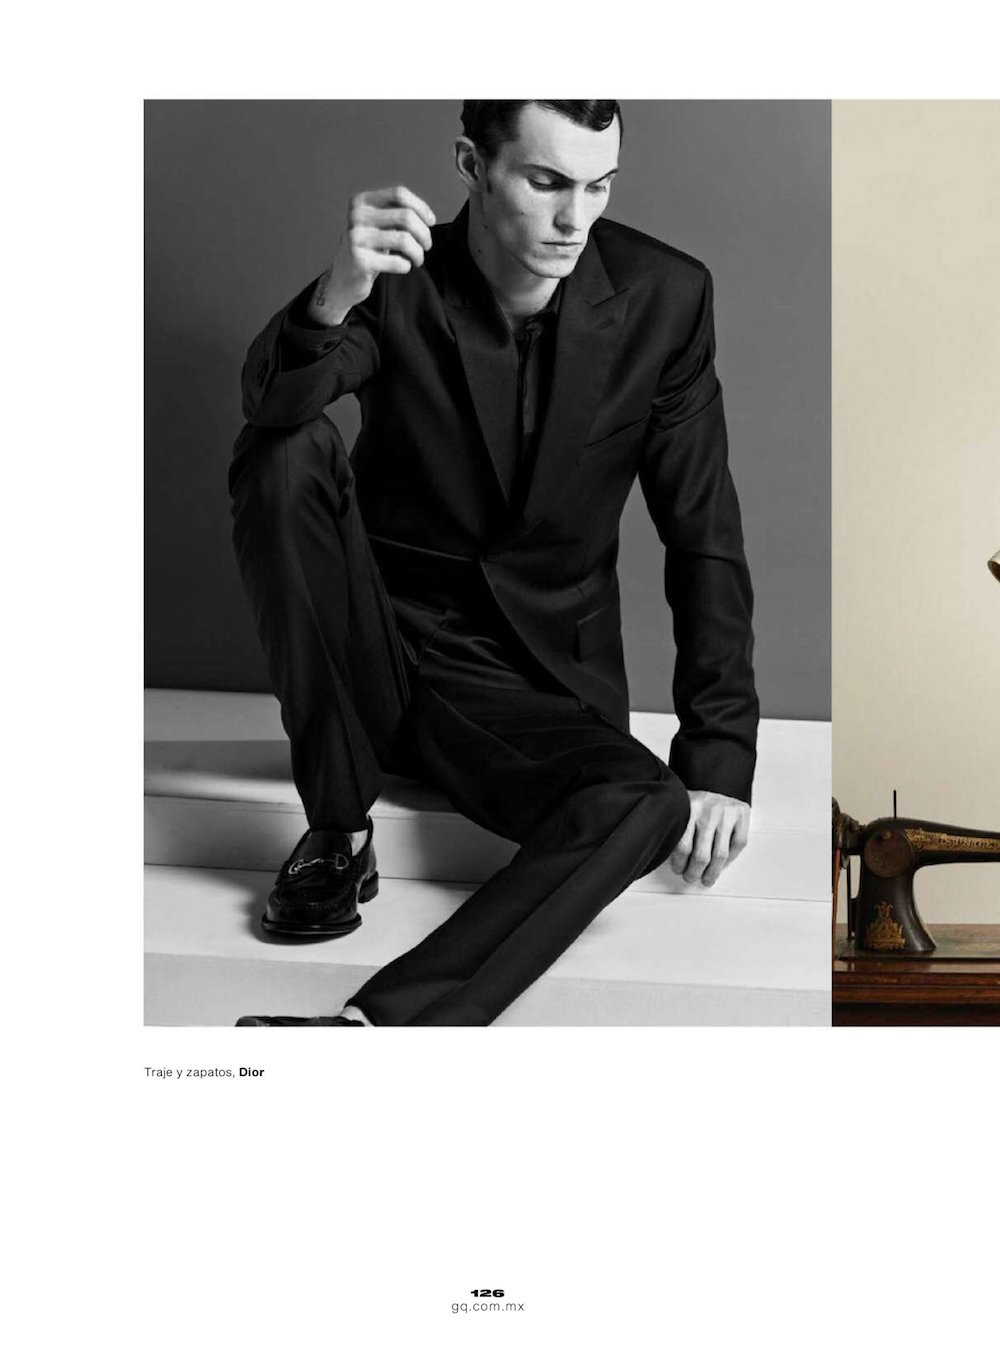 Luc Defont by Joseph Degbadjo for GQ Mexico April 2021 Editorial